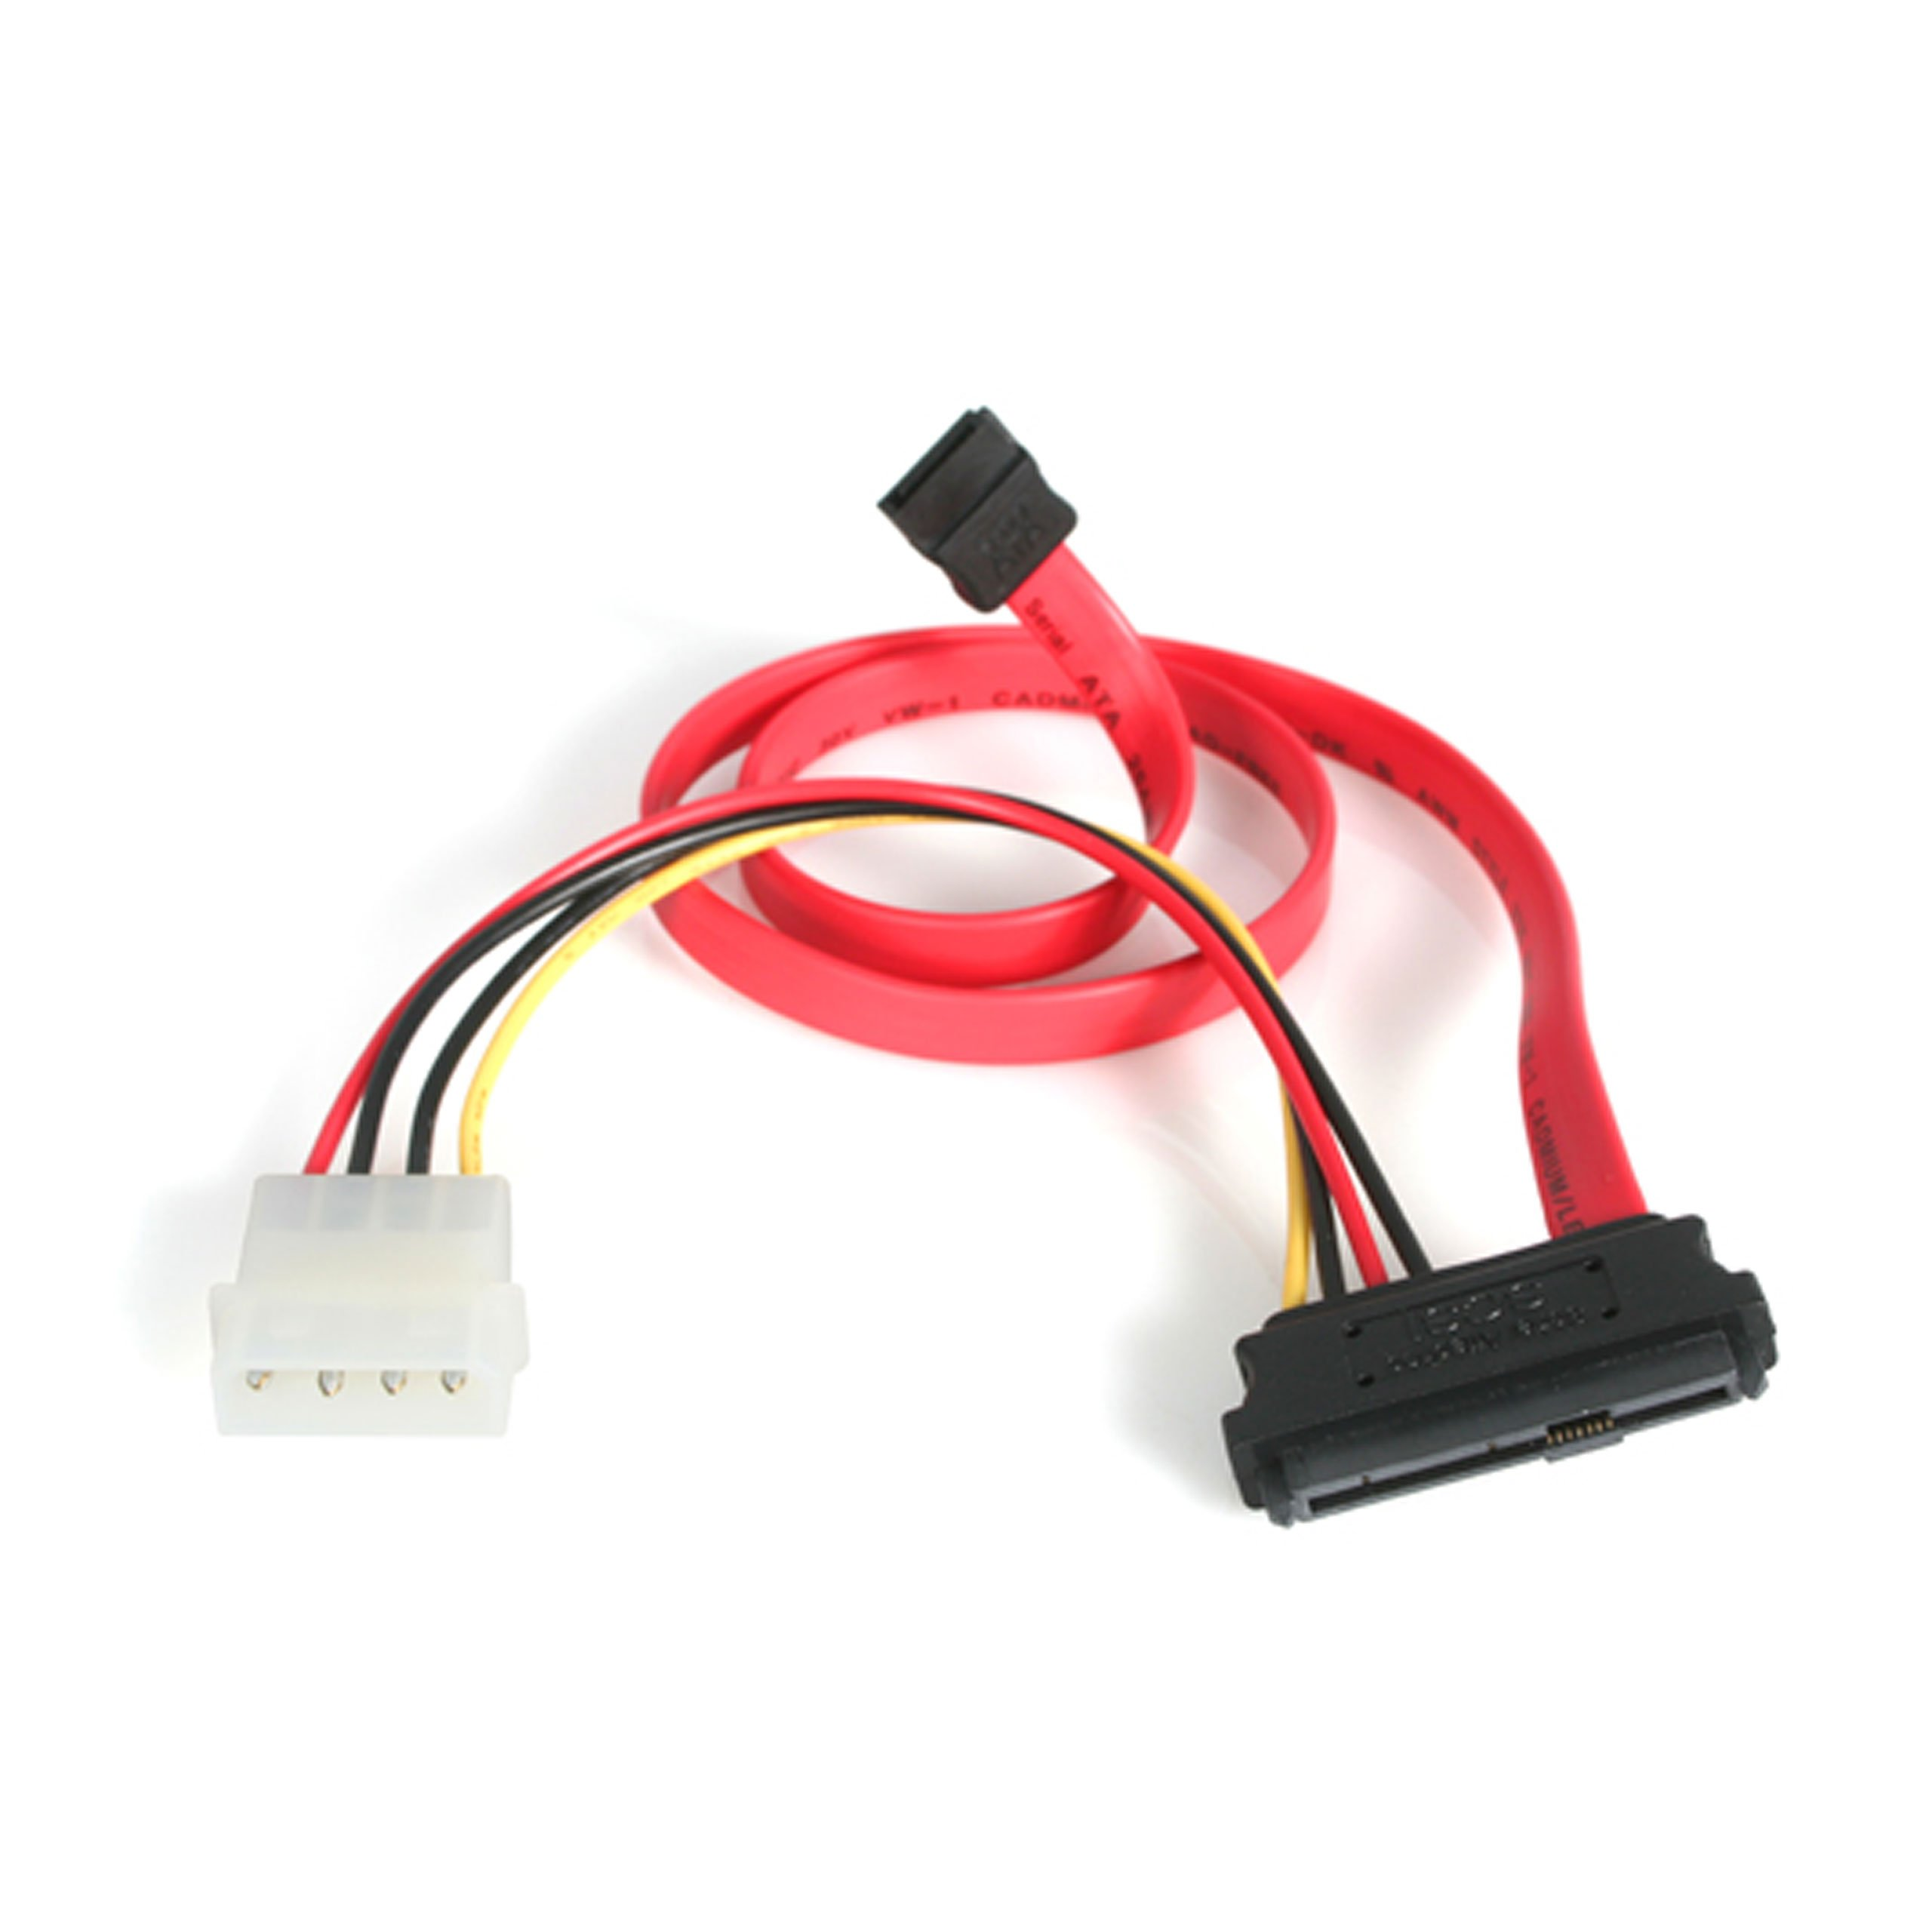 StarTech.com 18in SAS 29 Pin to SATA Cable with LP4 Power - 18in SAS 29 pin to SATA Cable - 18in SFF 8482 to SATA (SAS729PW18) by StarTech